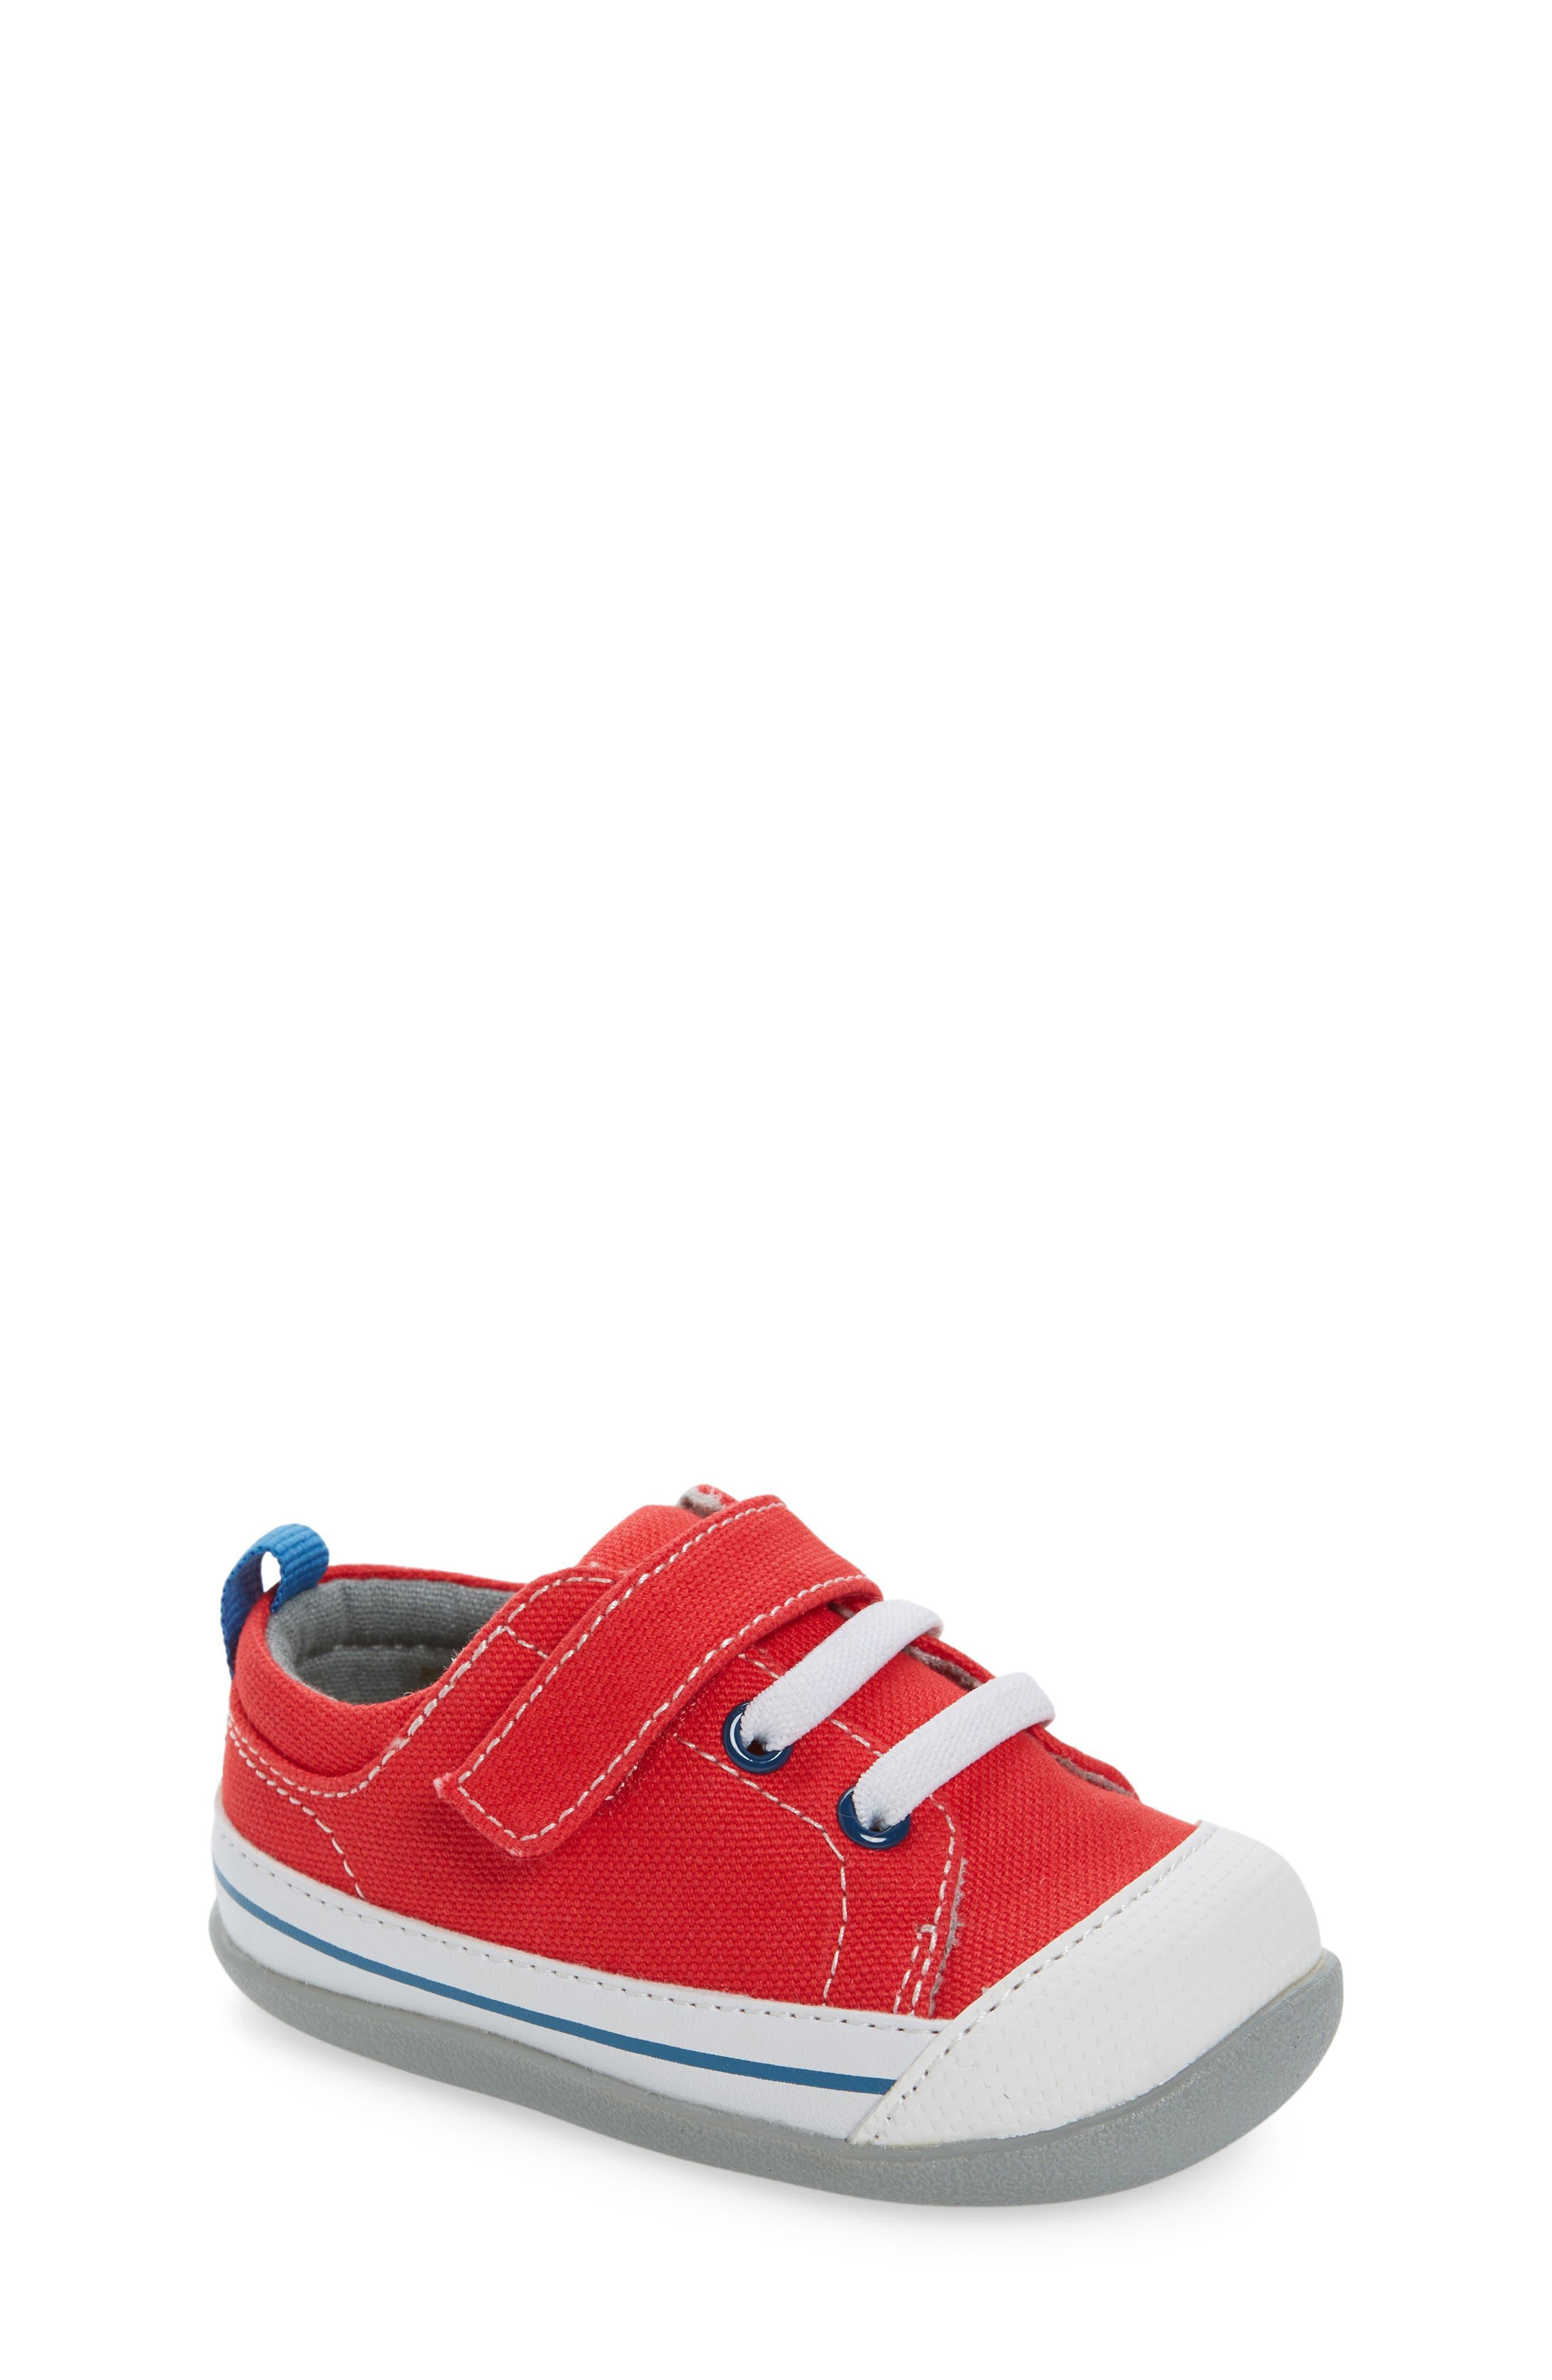 Stevie II Sneaker,                             Main thumbnail 1, color,                             RED CANVAS